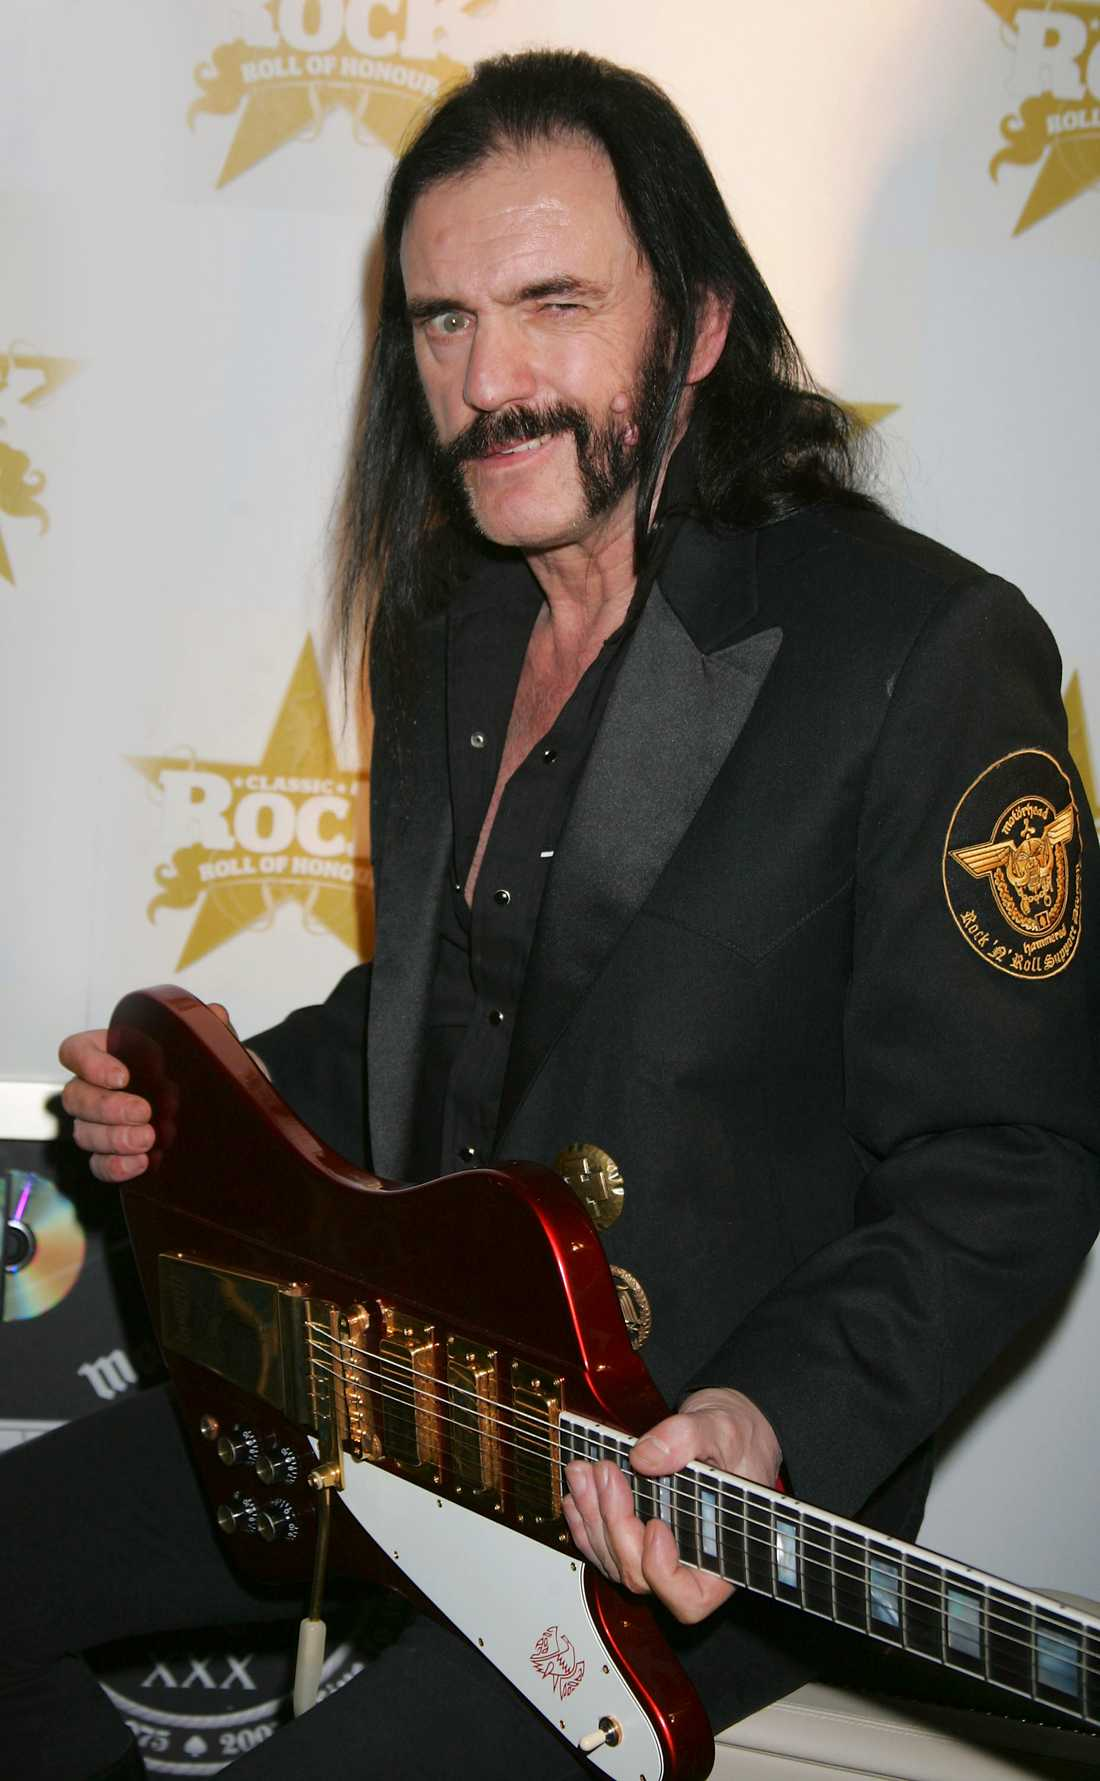 Lemmy Kilminster i London 2005.